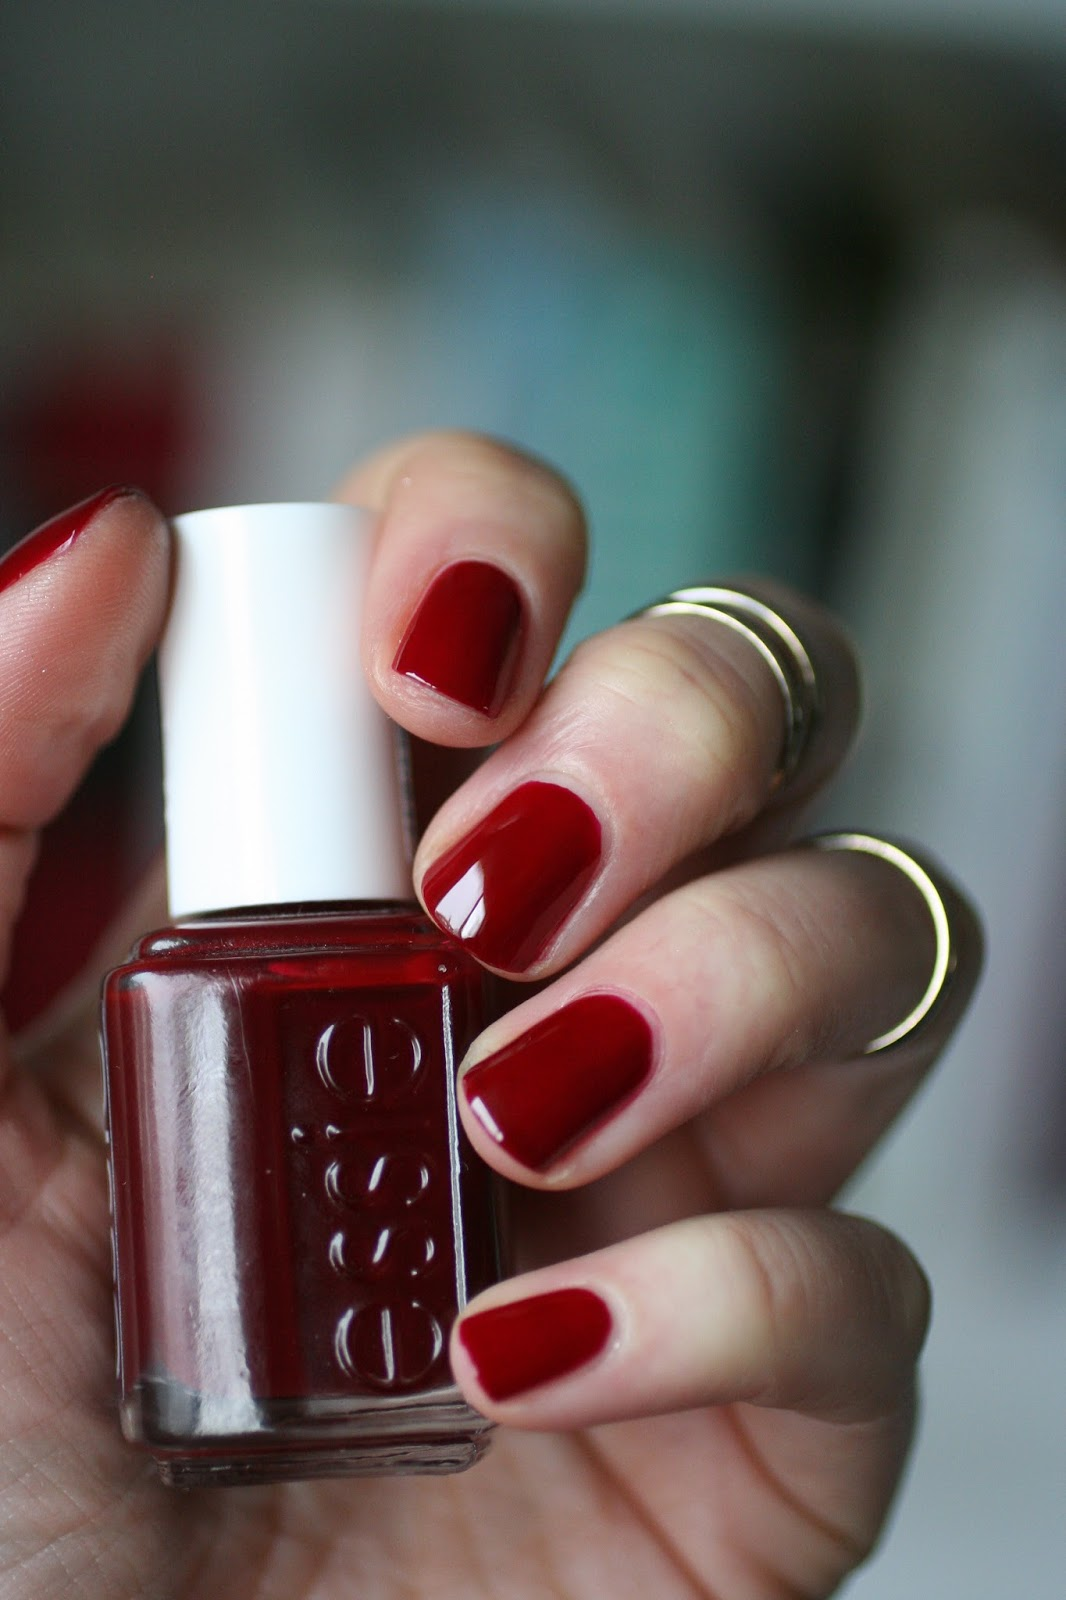 Awesome Nail Polish And Wudu Tiny Removing Gel Nail Polish Rectangular White Nail Polish Ideas Nail Art Using Water Old Light Pink Opaque Nail Polish BlackOpi Nail Polish Blue November Nail Polish Favorites | Essie Envy